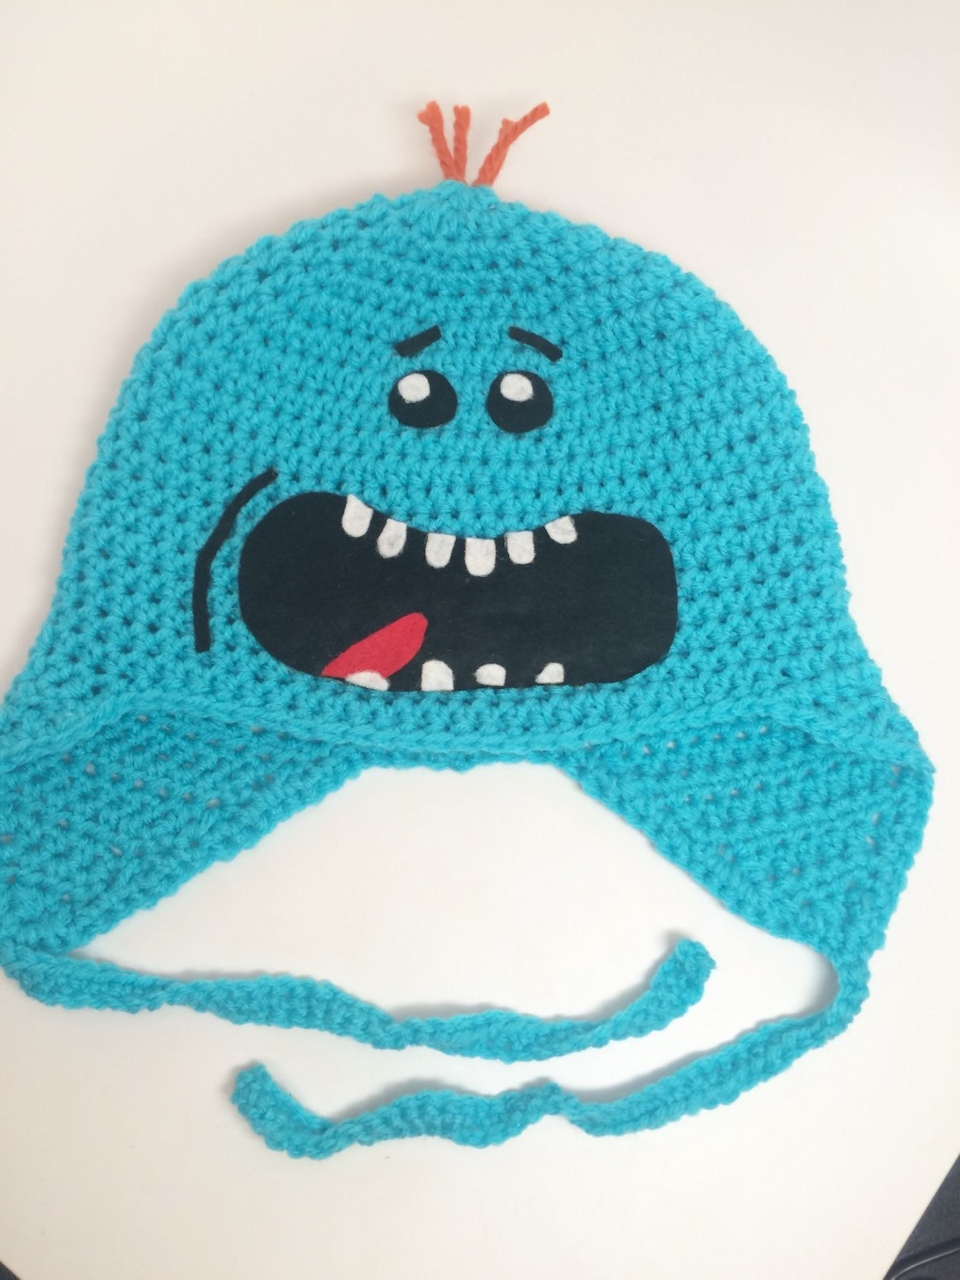 job advertisement websites keep sample customer service resume job advertisement websites keep top 10 job search websites designpinoy mr meeseeks crochet hat i